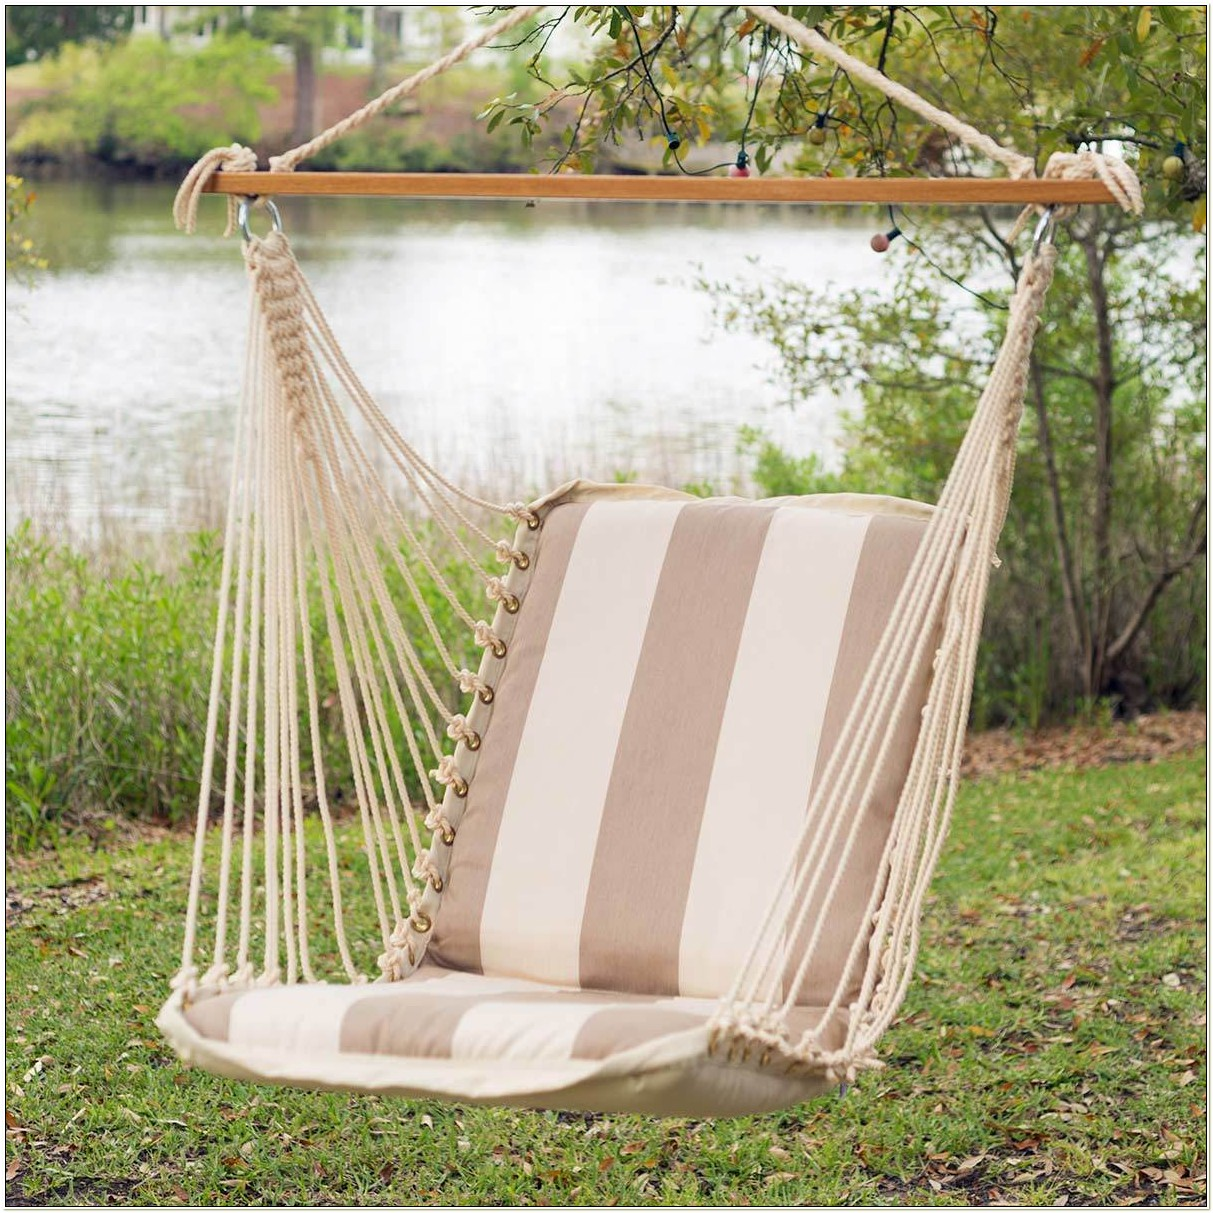 Pawleys Island Hammock Swing Chair